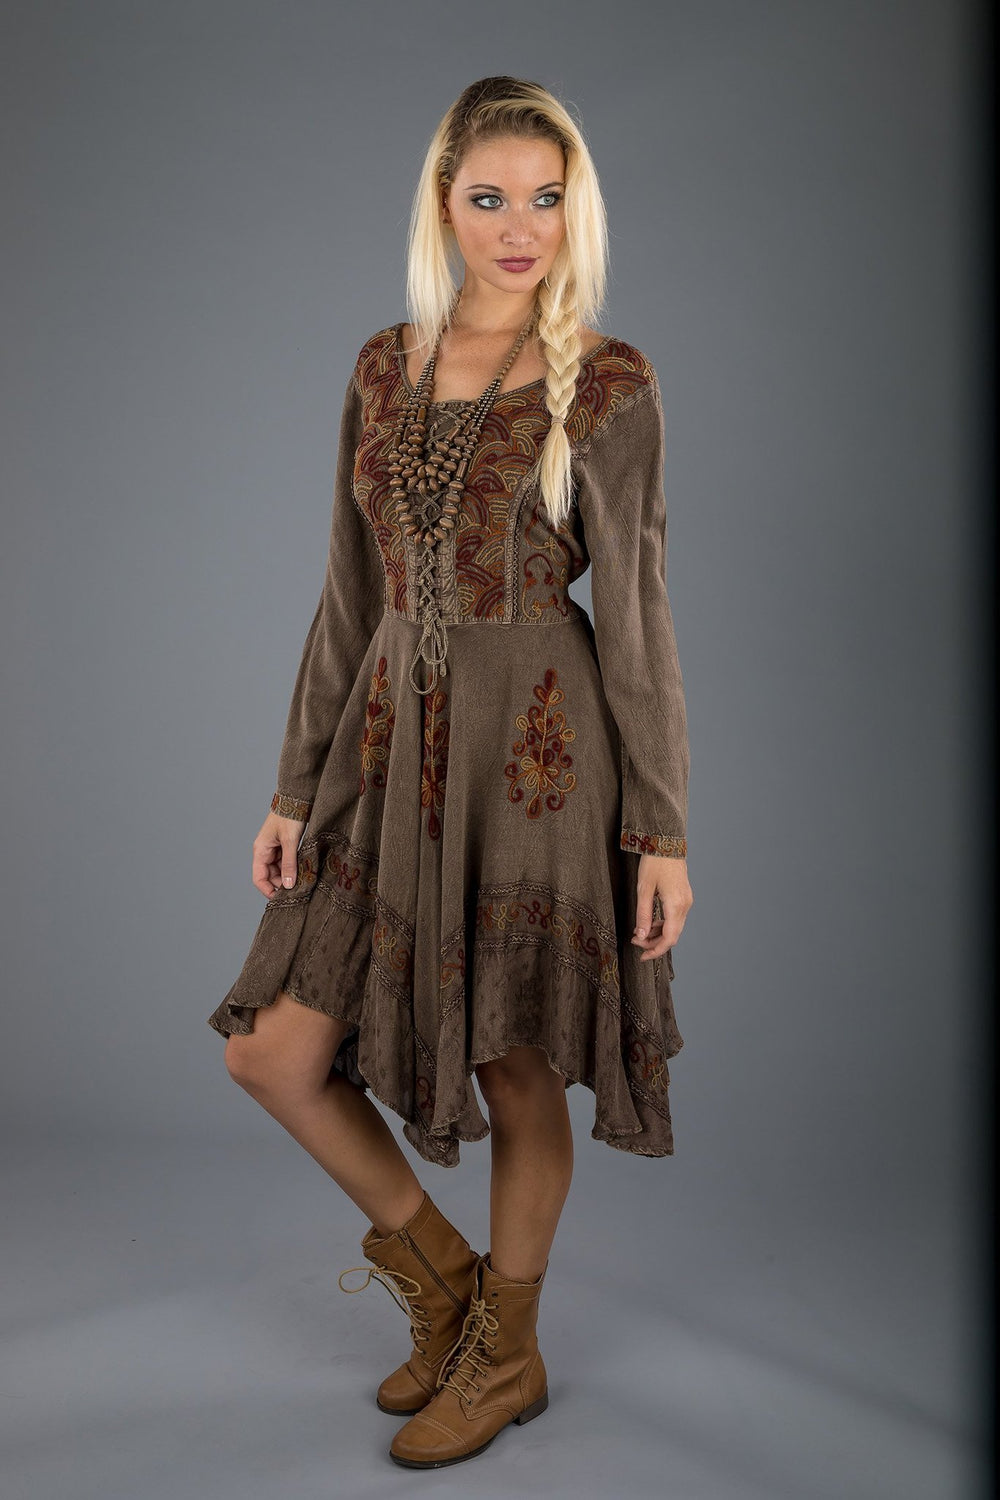 Lace-Up Medieval Style Dress-Short Dress